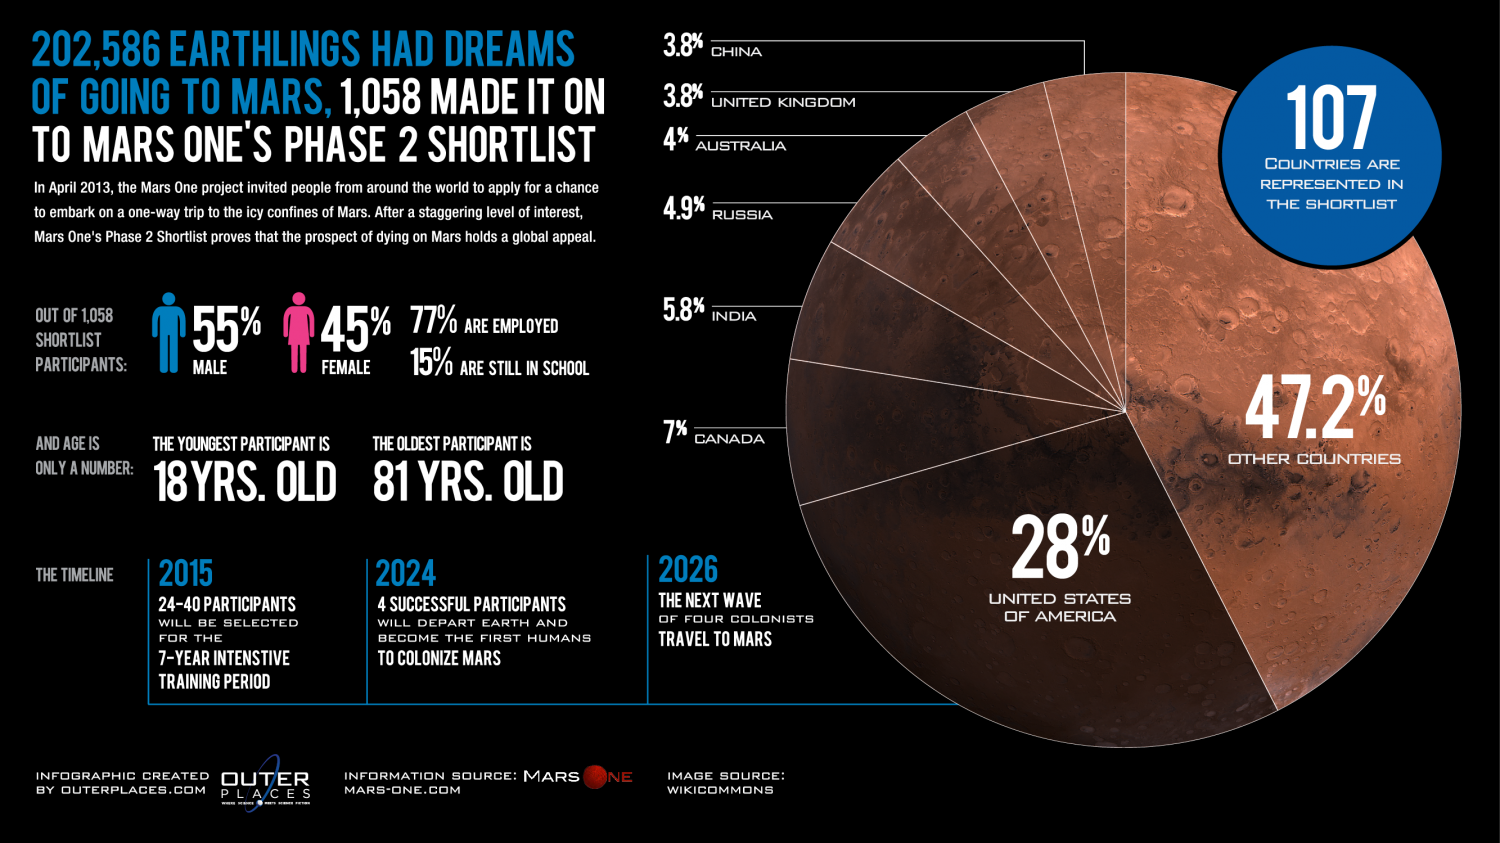 1,058 Shortlisted To Die On Mars Infographic